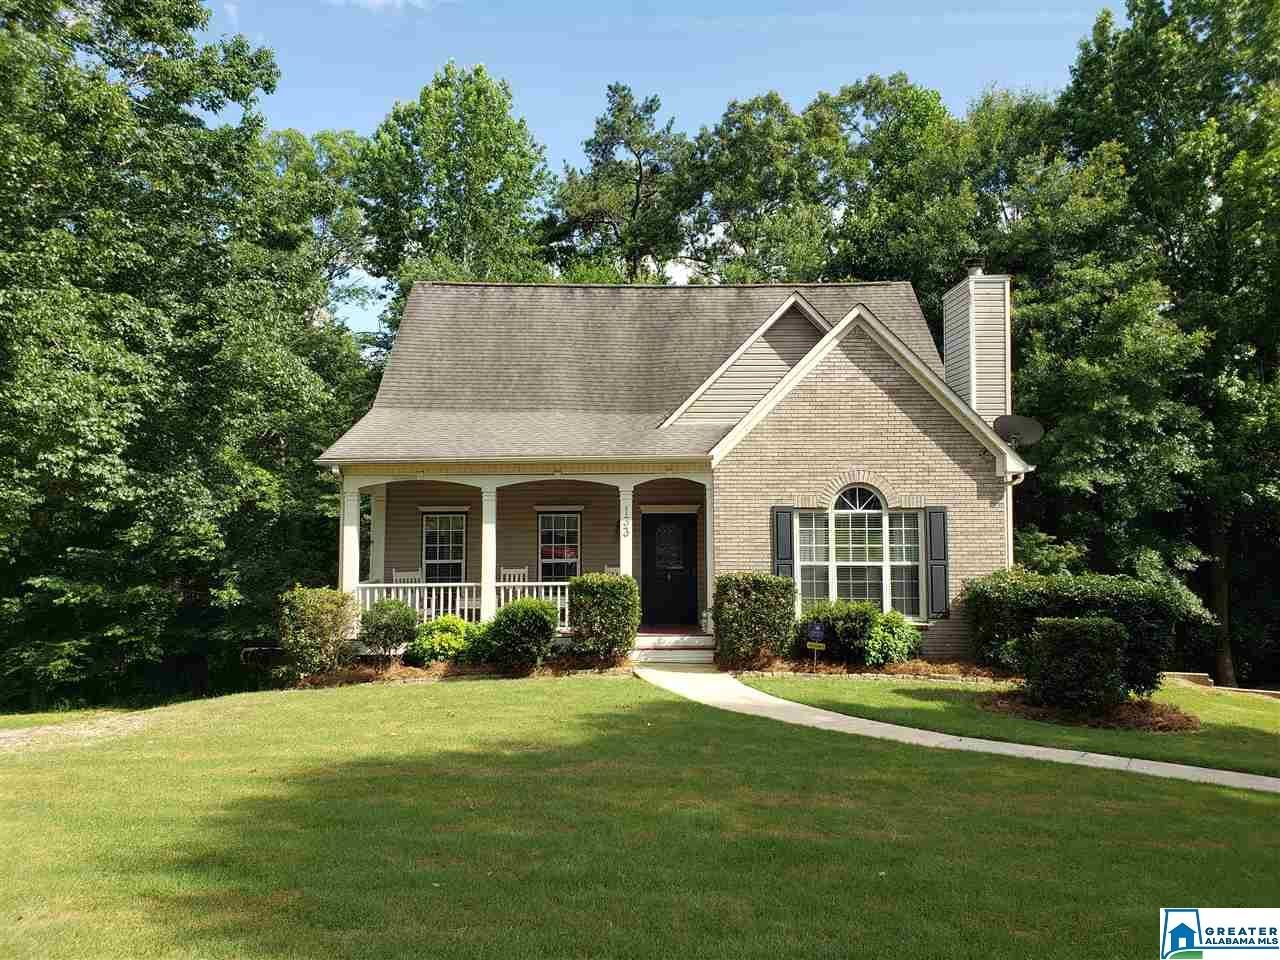 133 TWIN OAKS CIR, Chelsea, AL 35043 - MLS#: 886663